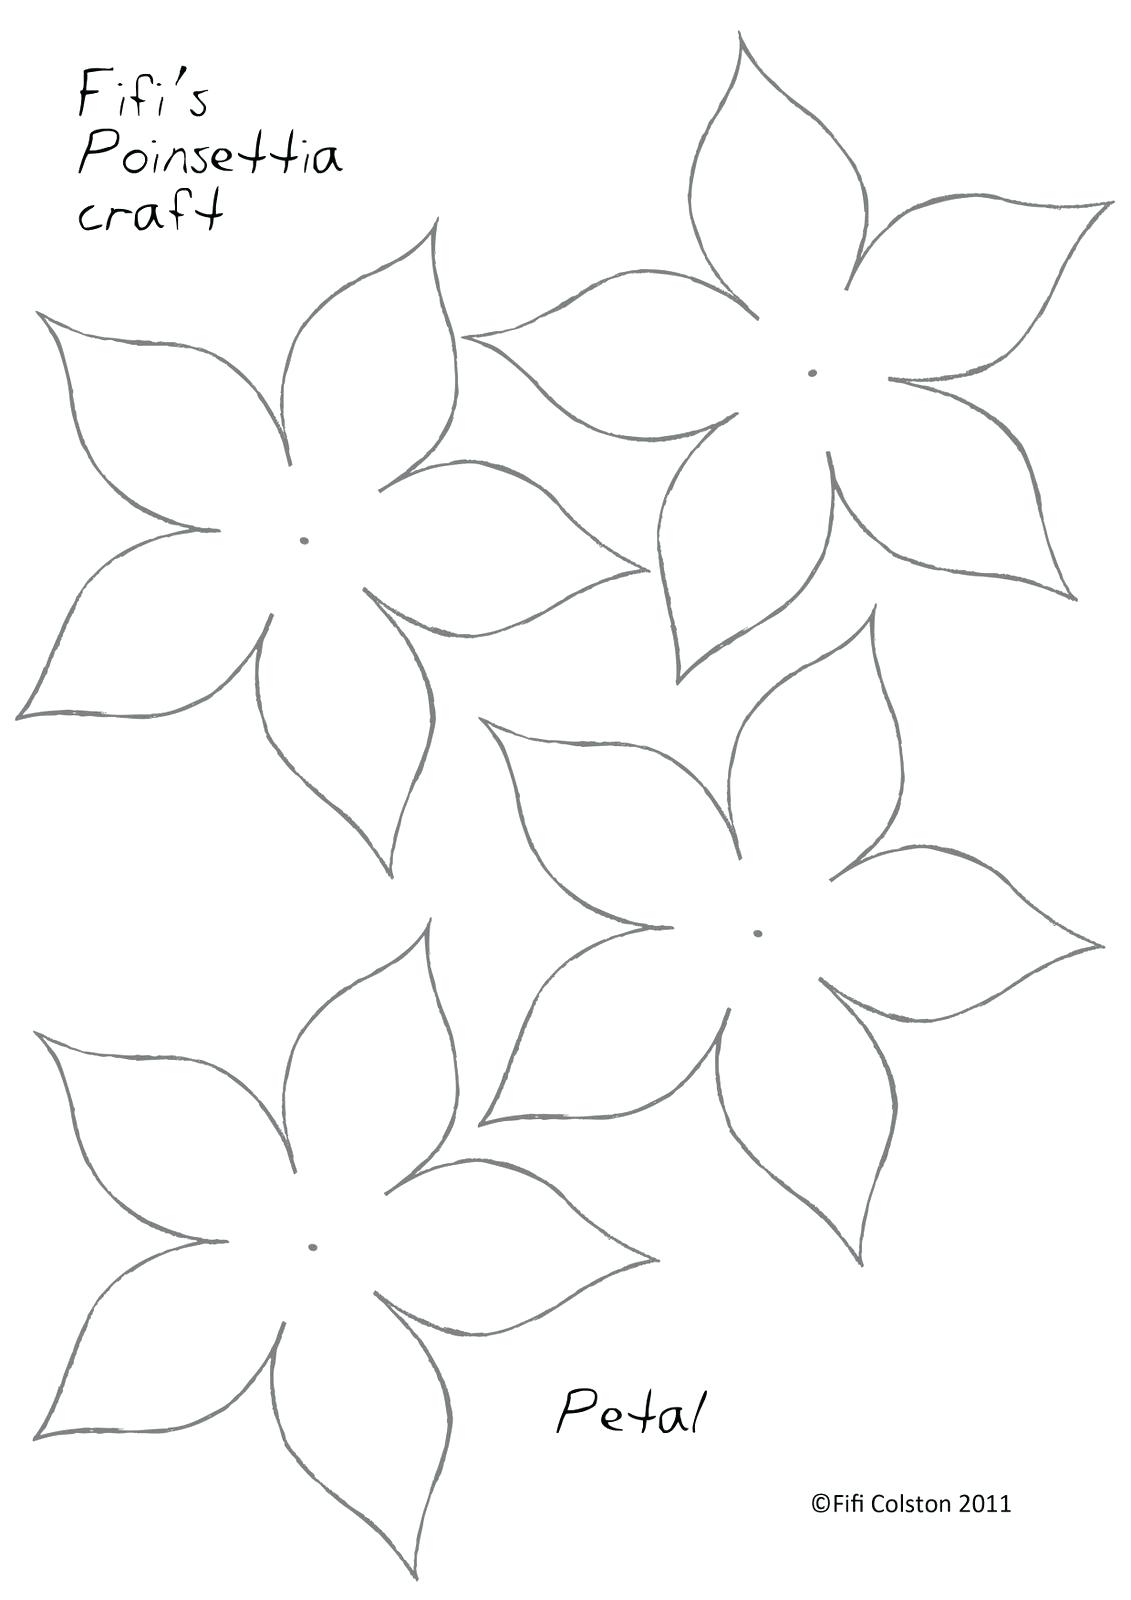 1131x1600 Template Poinsetta Template Poinsettia Leaves. Poinsetta Template